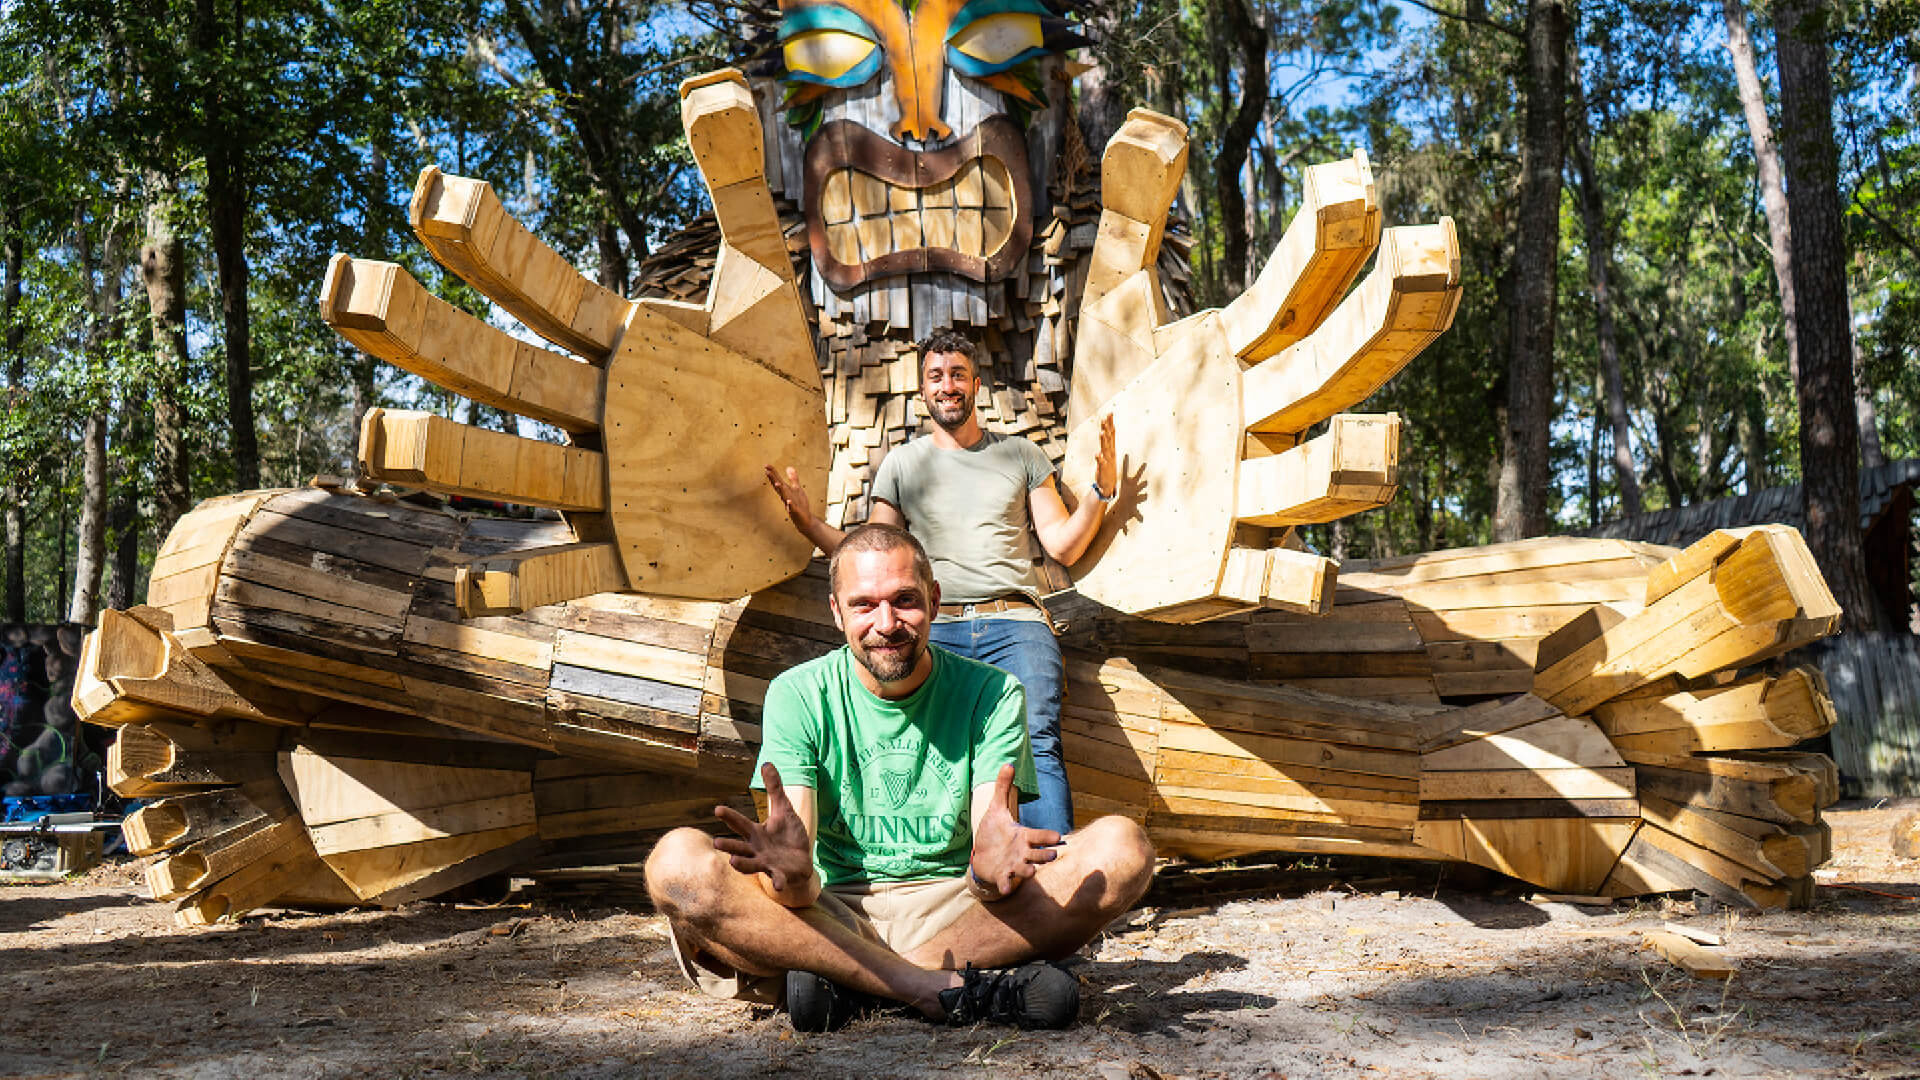 Thomas Dambo with his sculpture Zach The Shaman and an onlooker, created in Suwannee, Florida, 2018 | Zach The Shaman at Hullaween  by Thomas Dambo | STIRworld